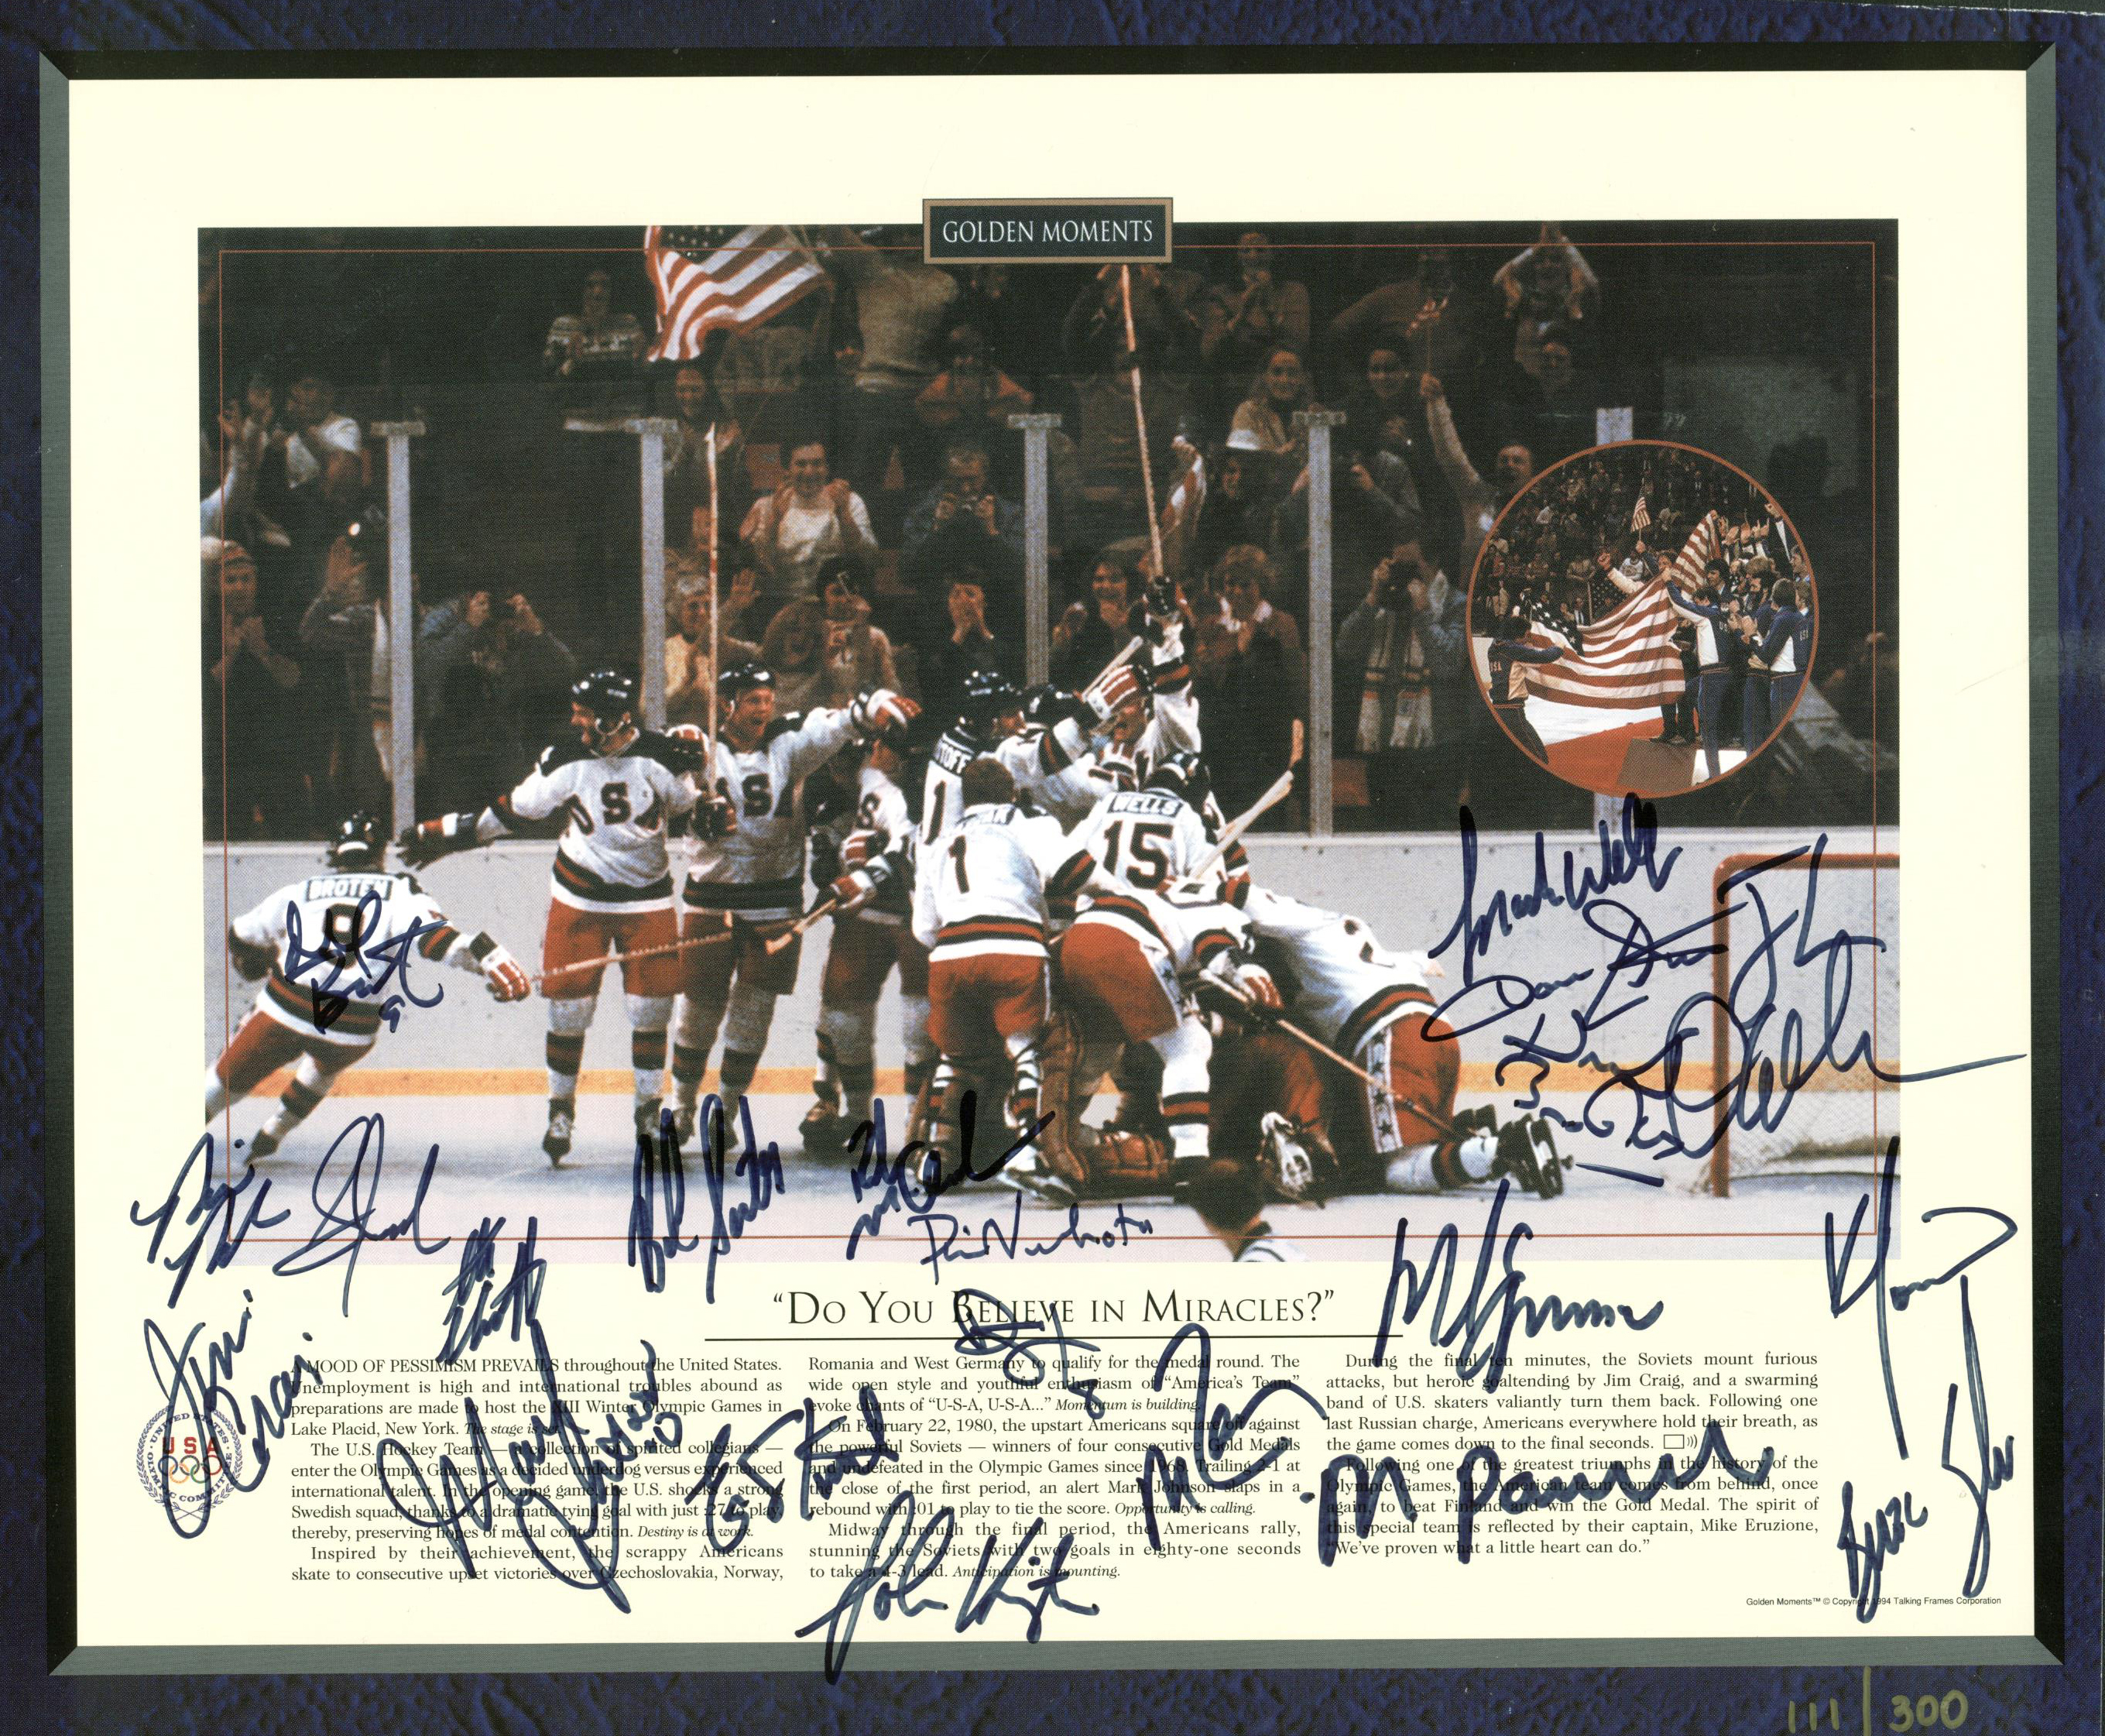 1980 us hockey team Sports illustrated call it the single most incredible moment in all of us sports history, a moment that sent the entire nation into a frenzy the sporting news said that american hockey came of age on feb 22-1980 when the usa hockey team took down the mighty red army hockey team from russia in.